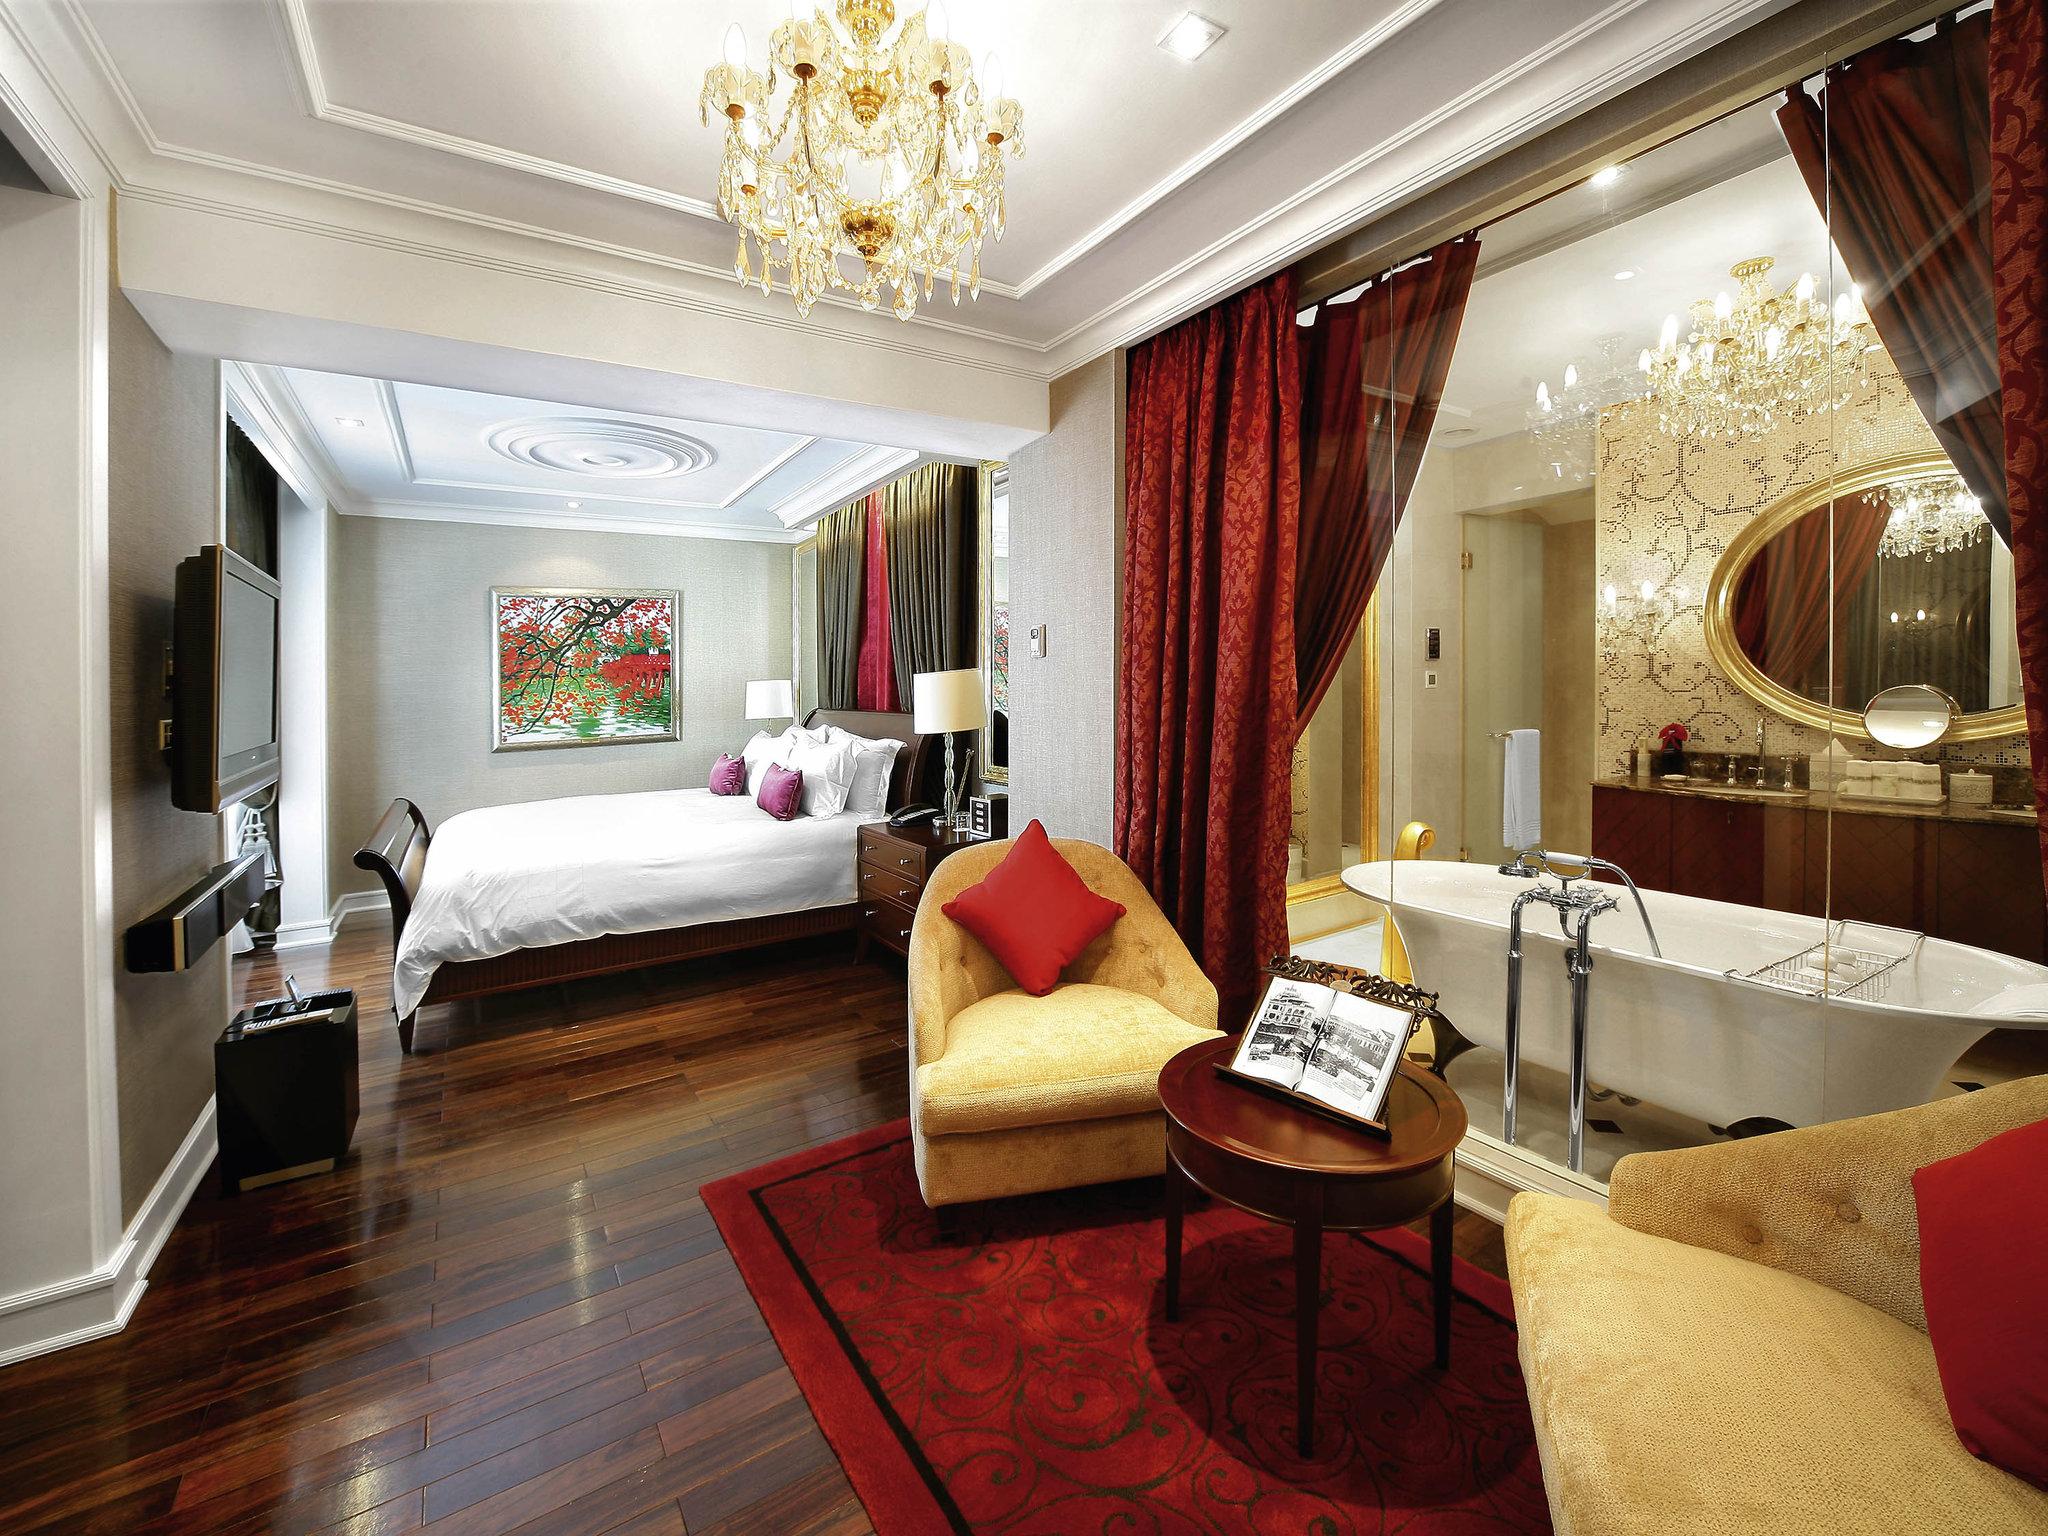 Luxury room view of hotel Sofitel Legend Metropole, Hanoi Vietnam